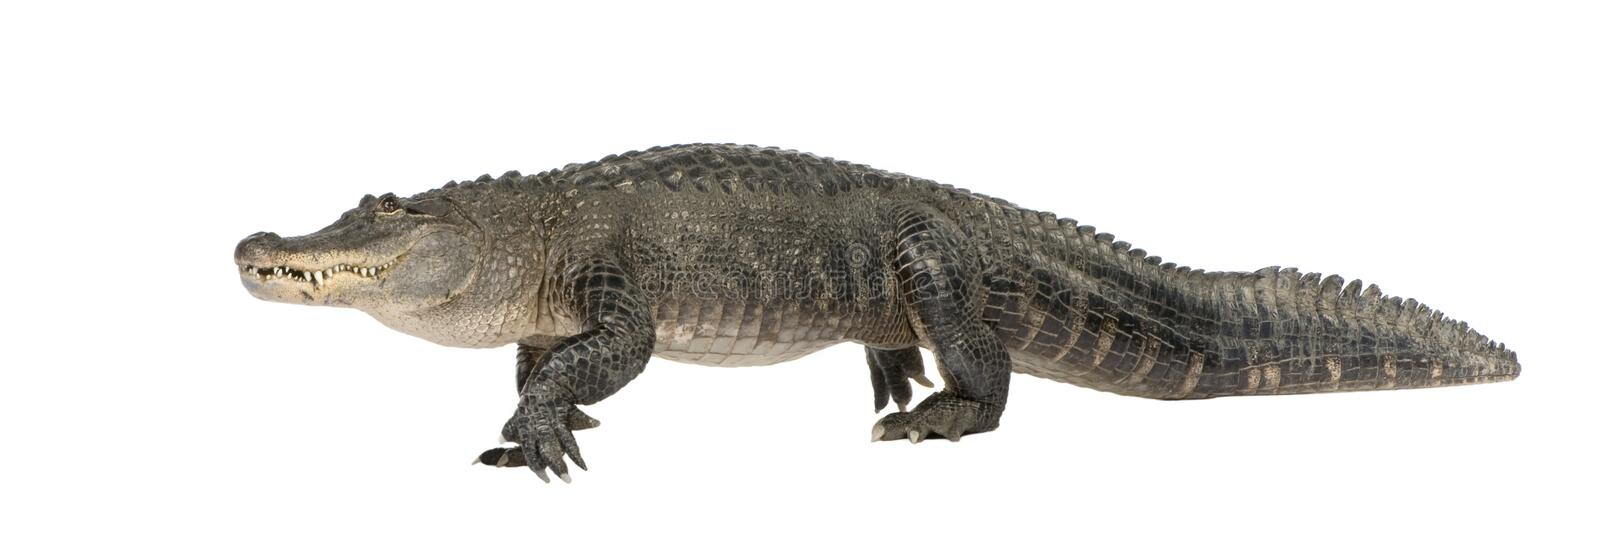 American Alligator (30 years) stock photo